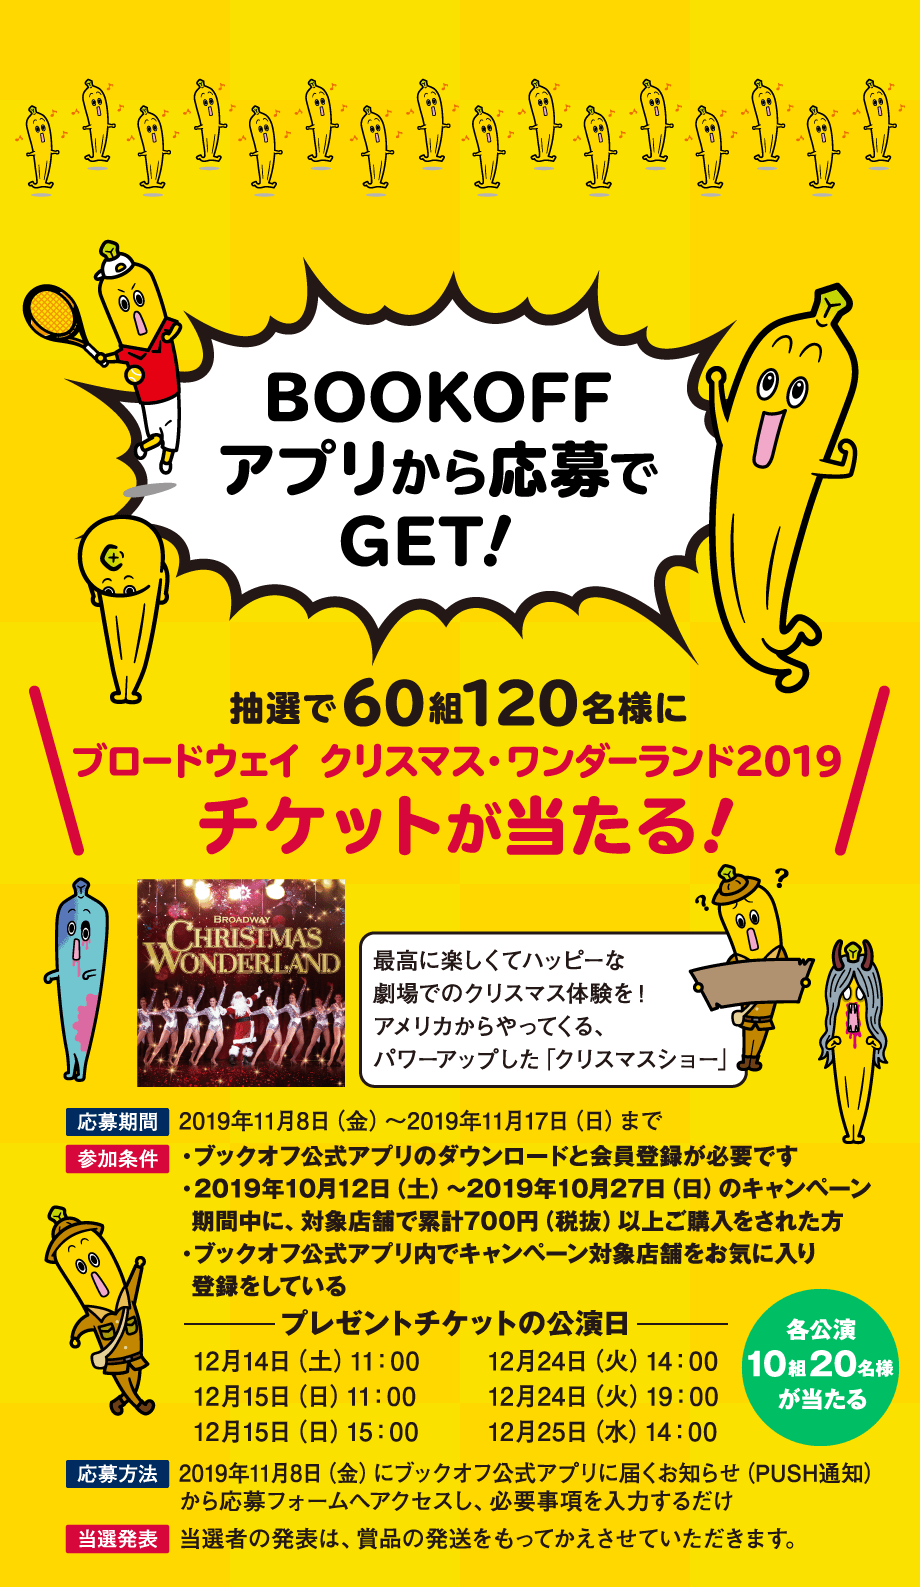 BOOKOFFアプリから応募でGET!